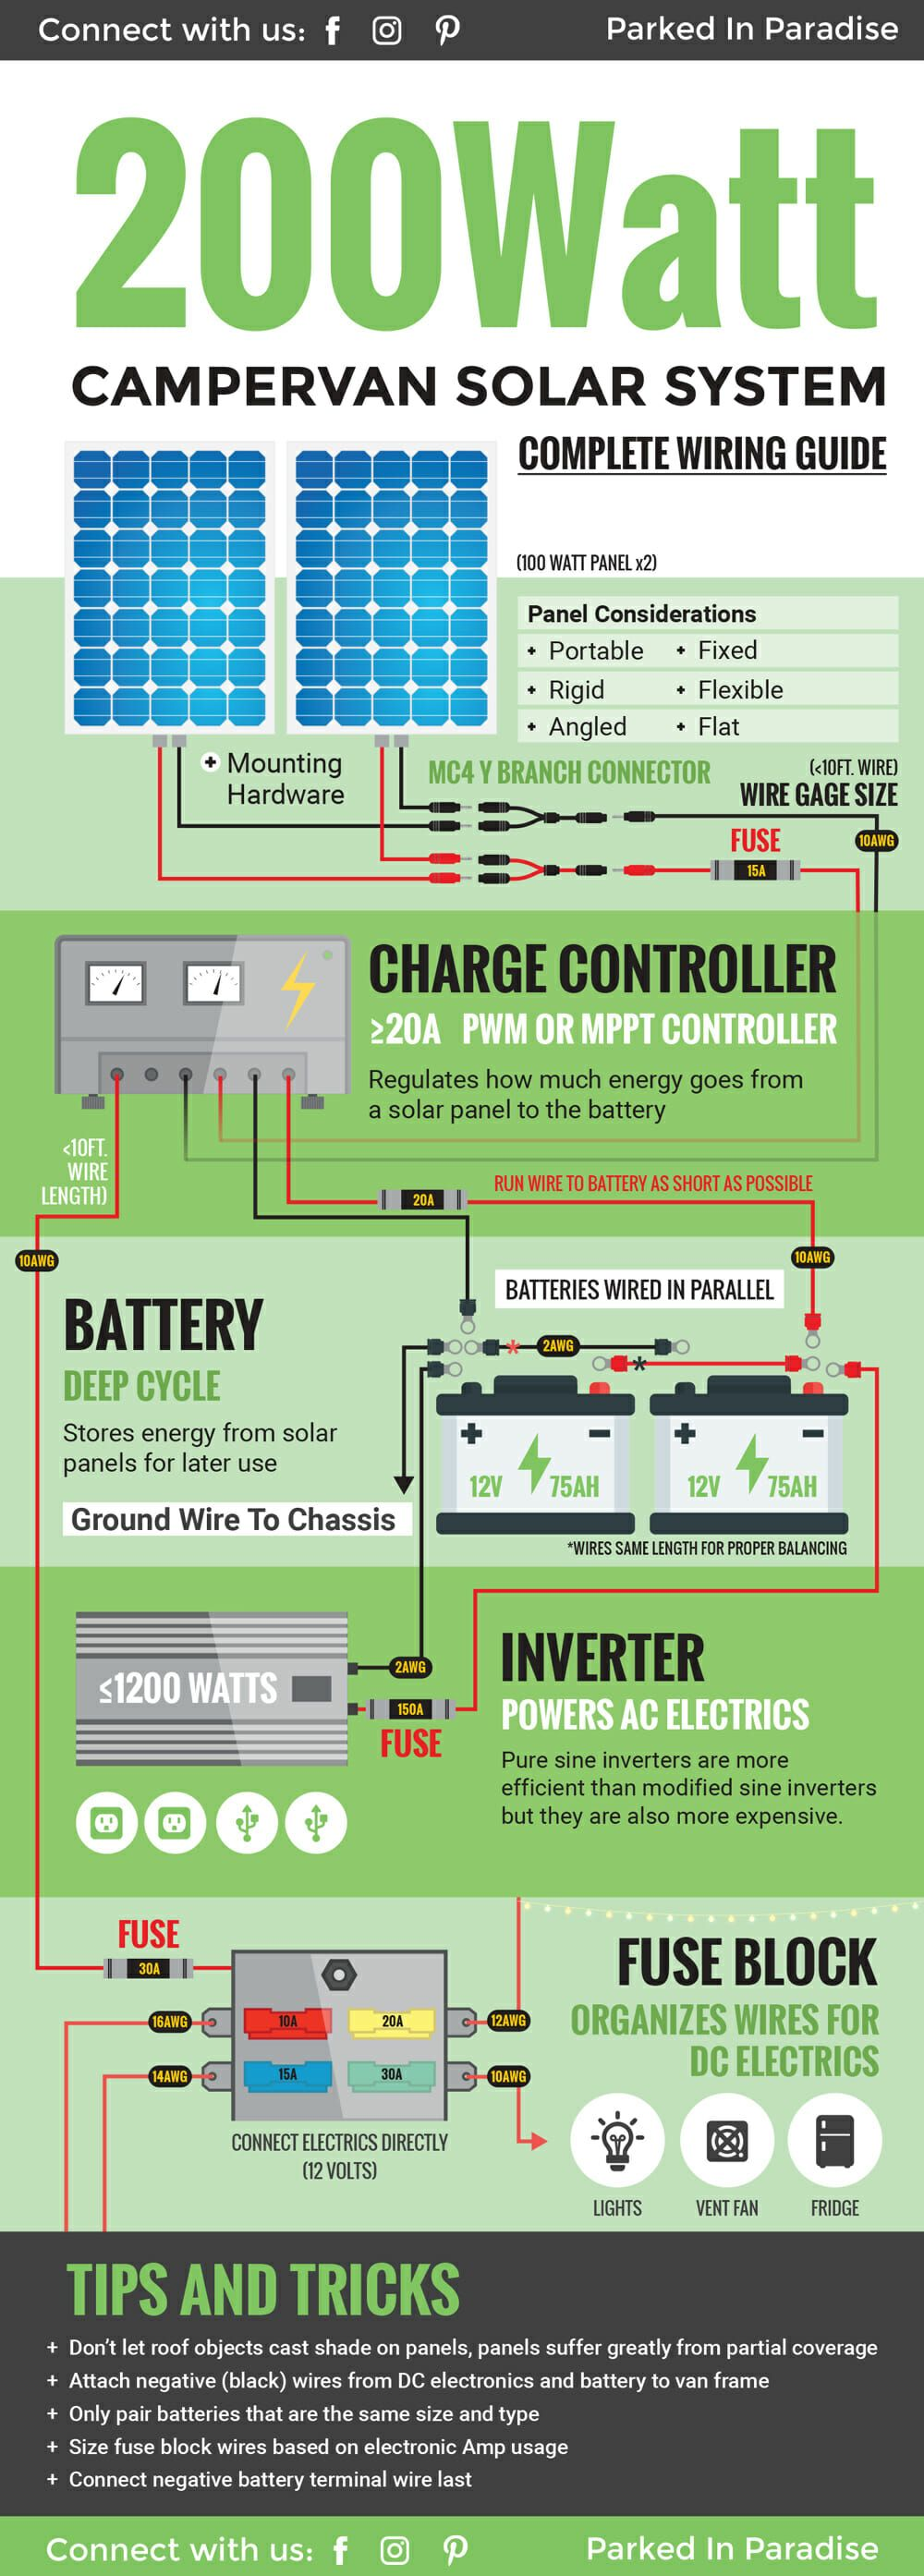 Solar Calculator And Diy Wiring Diagrams Solar Panels Alternative Energy Best Solar Panels